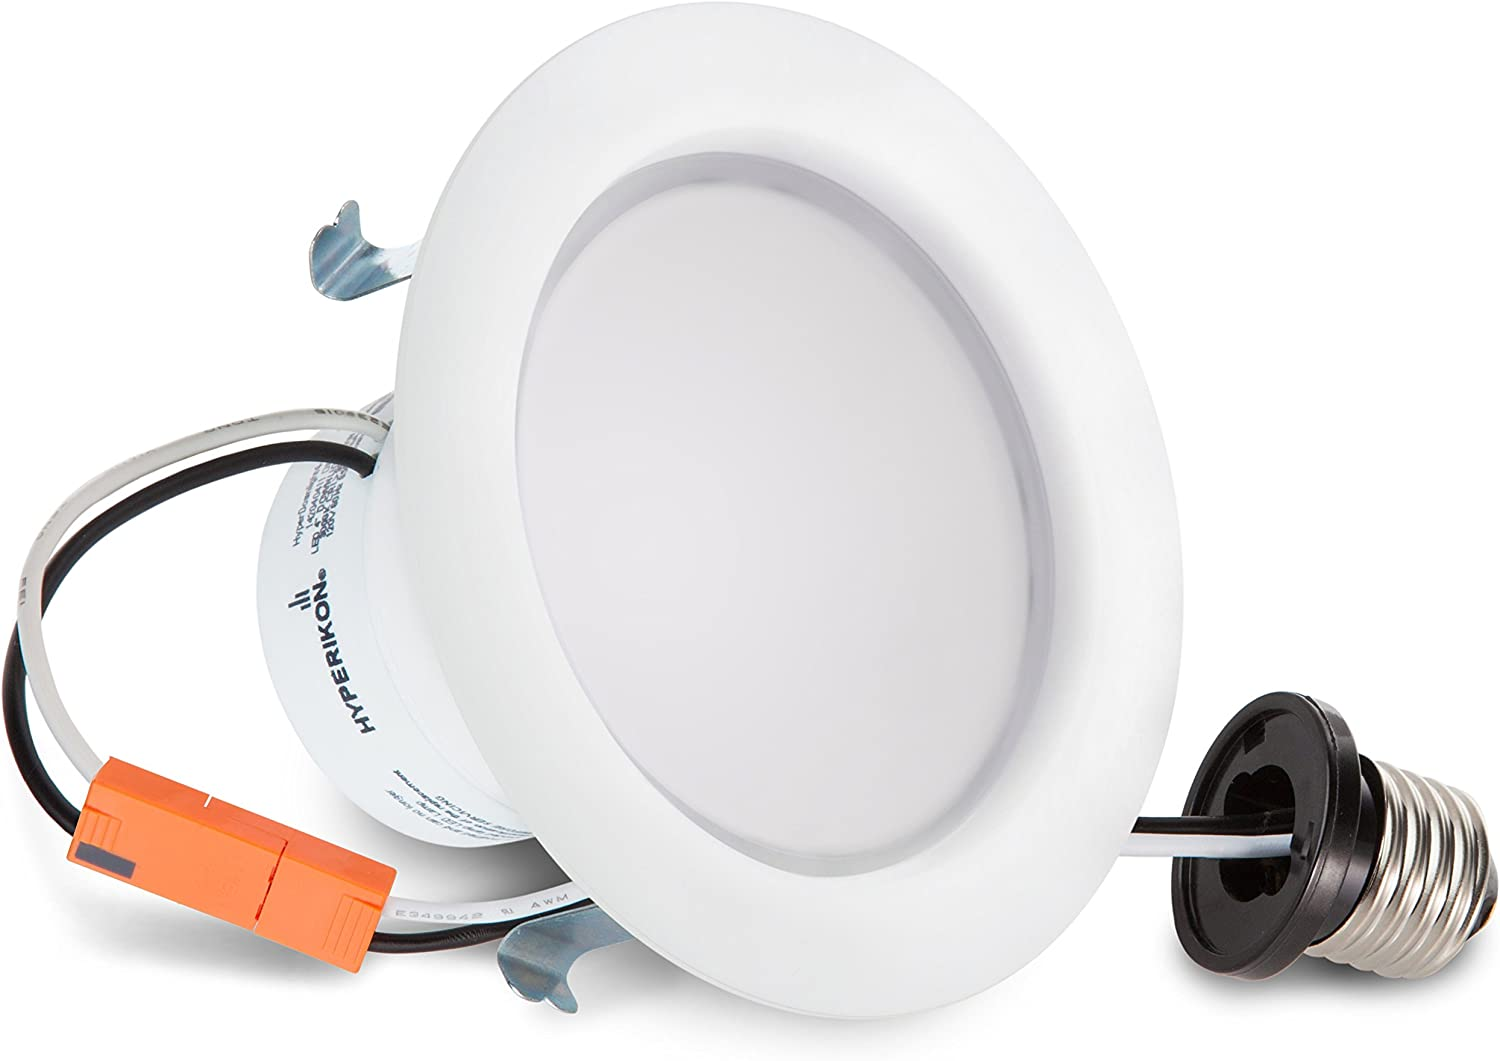 Hyperikon 4 Inch LED Recessed Lighting, 9W (65 Watt Replacement), Dimmable Downlight, 4000K Daylight